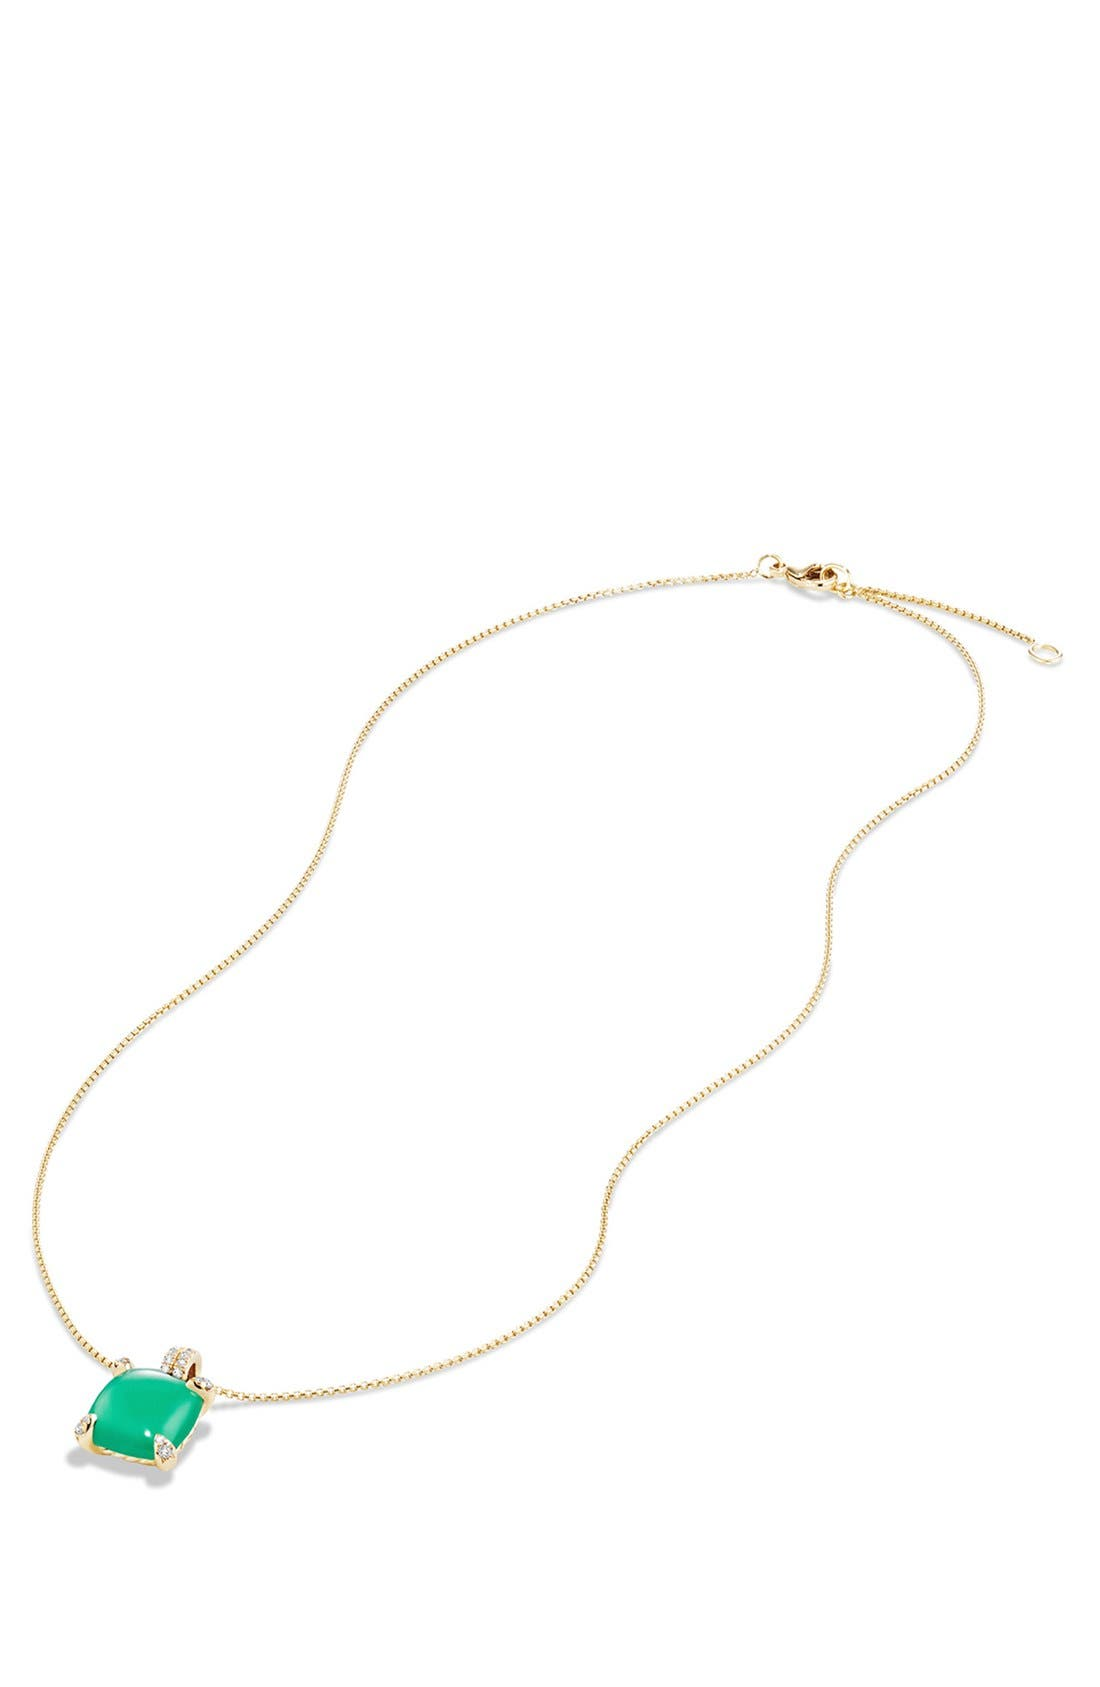 DAVID YURMAN,                             'Châtelaine' Pendant Necklace with Diamonds,                             Alternate thumbnail 4, color,                             CHRYSOPRASE